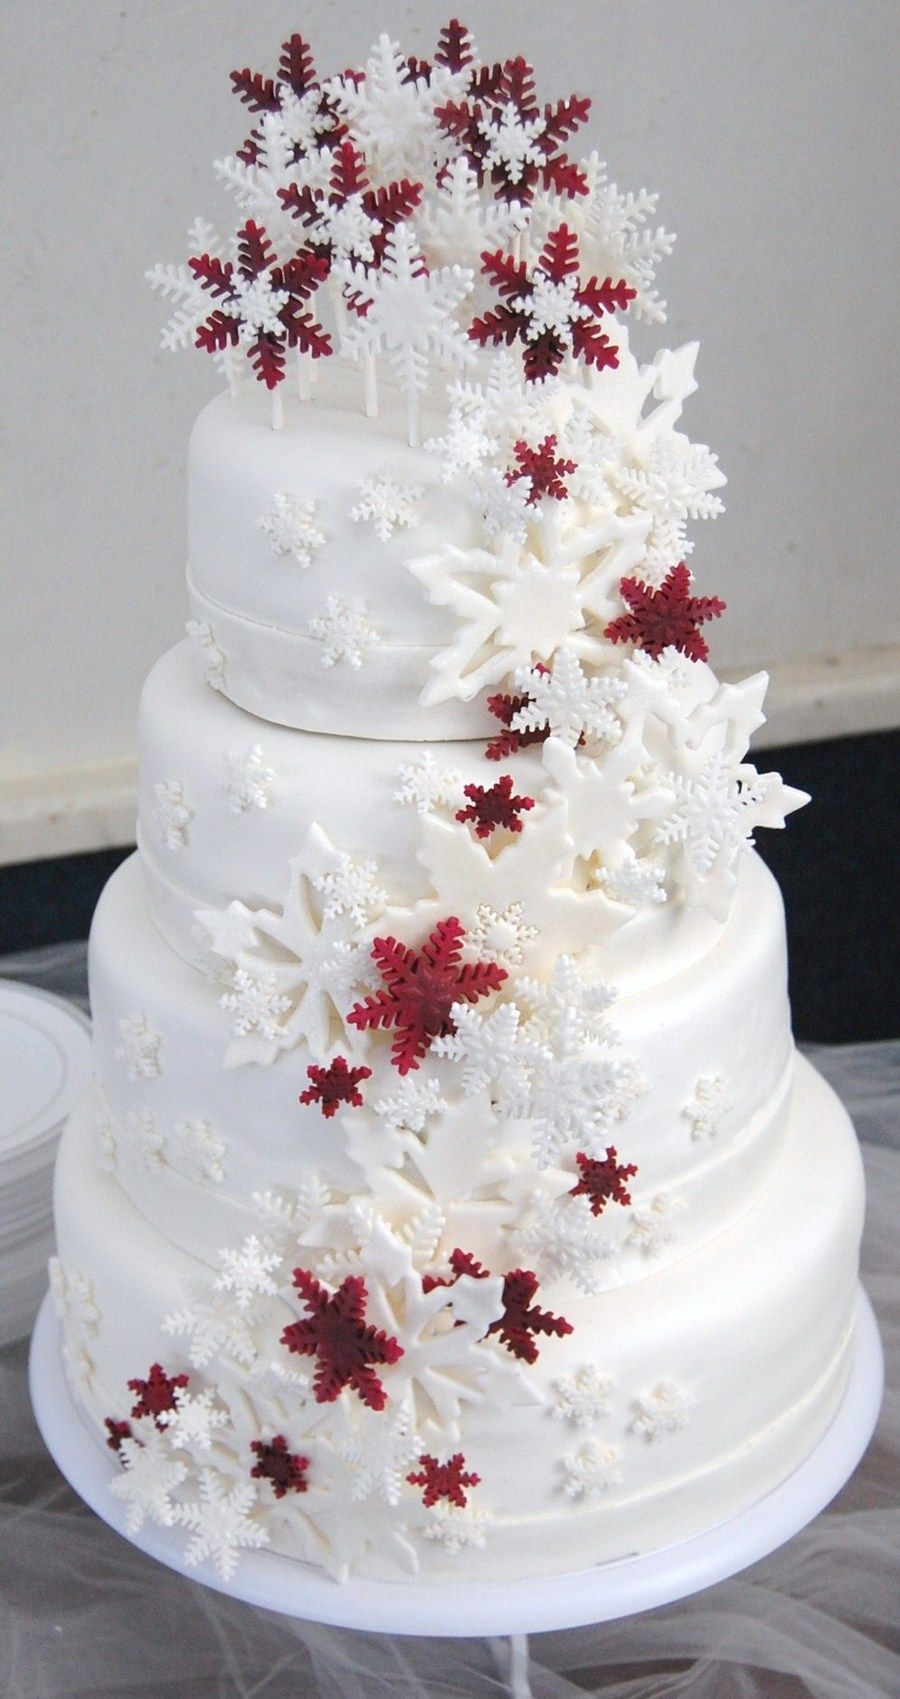 Pin by Norah Roos on Cakes - Christmas | Pinterest | Wedding cake ...